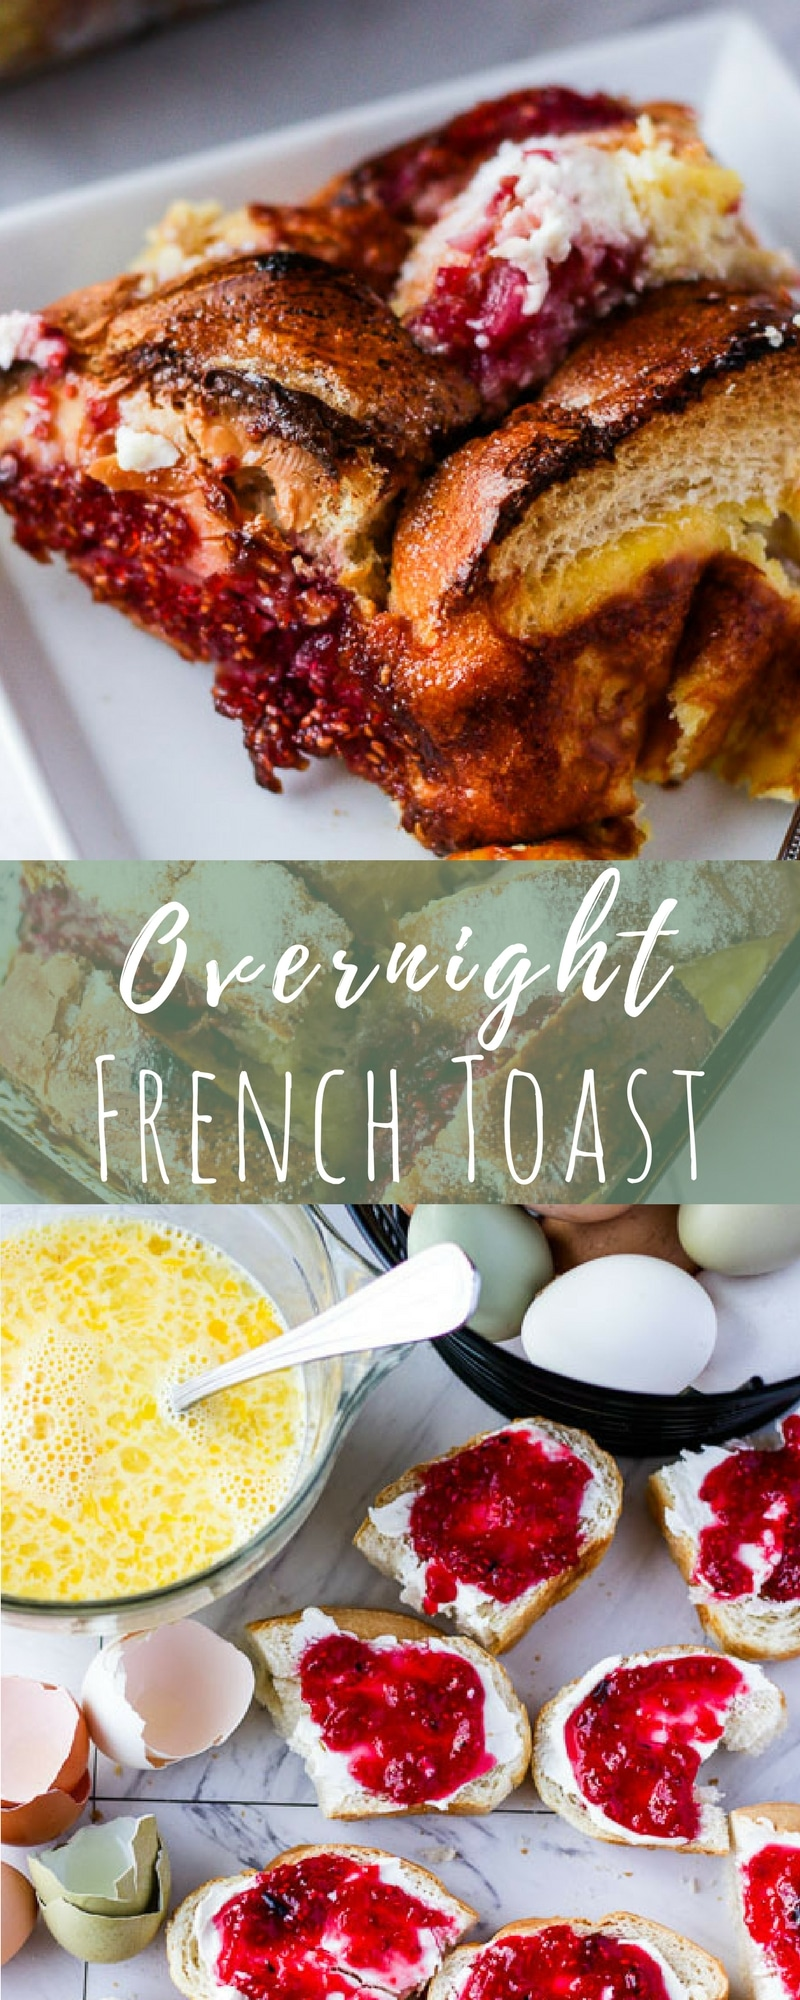 Overnight French Toast Bake is easy to put together, a great way to use up leftover bread, and a decadent breakfast for special occasions. Packed with flavor and layers of gooey bread, jam, and cream cheese this french toast bake is going to be a family favorite!